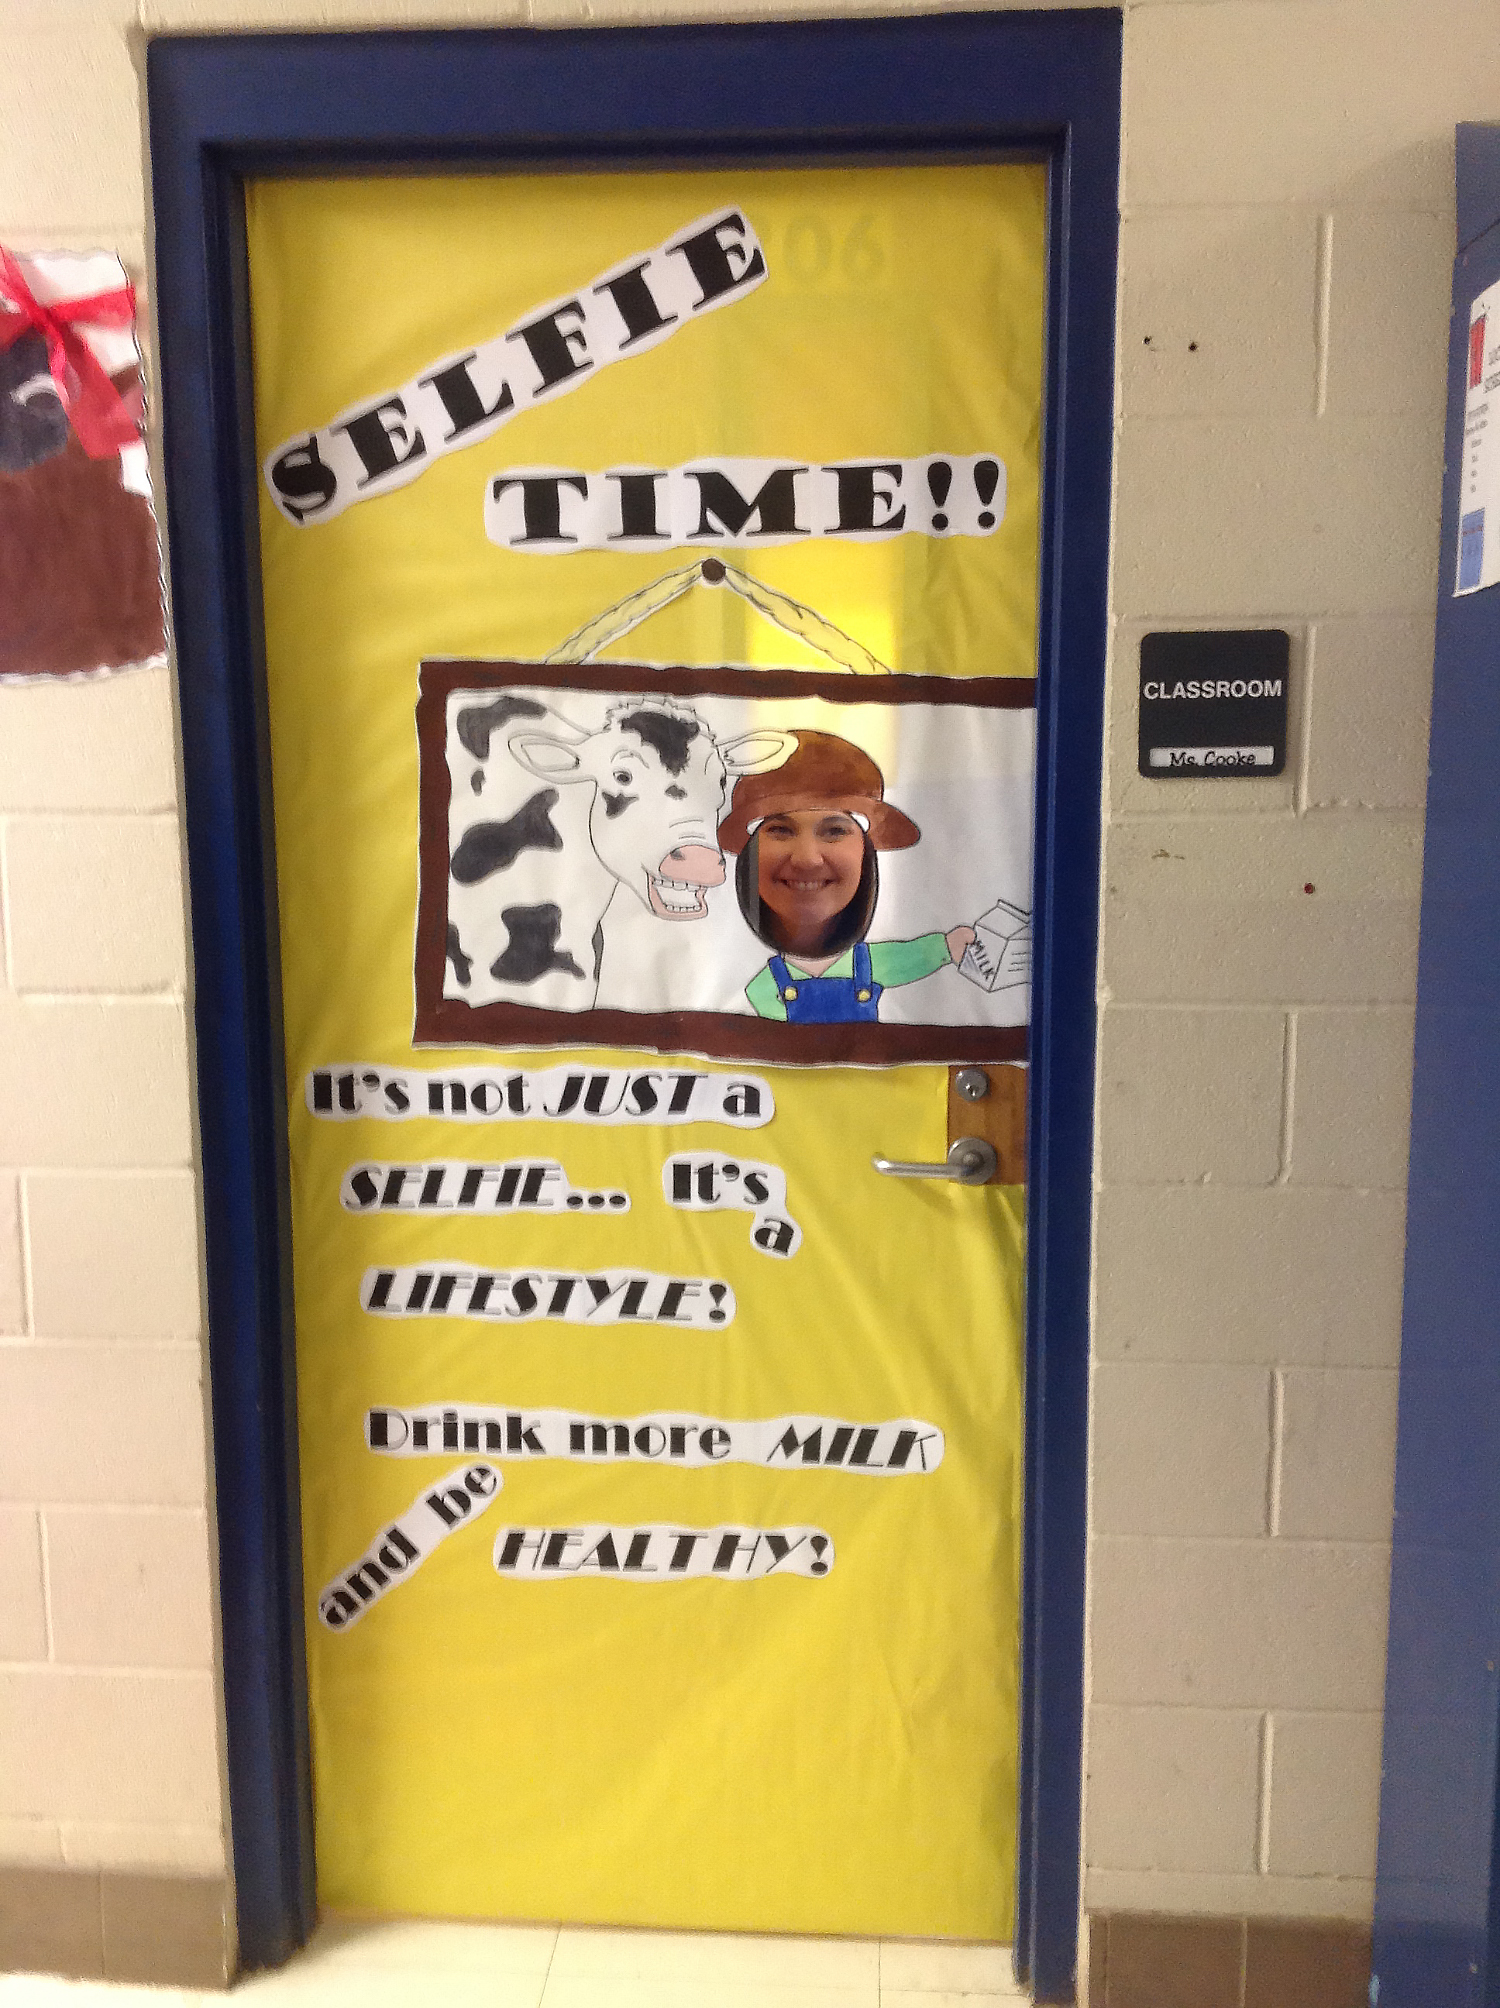 Folsom Jr. High School's Milk Day Door Decorating Contest Image 2